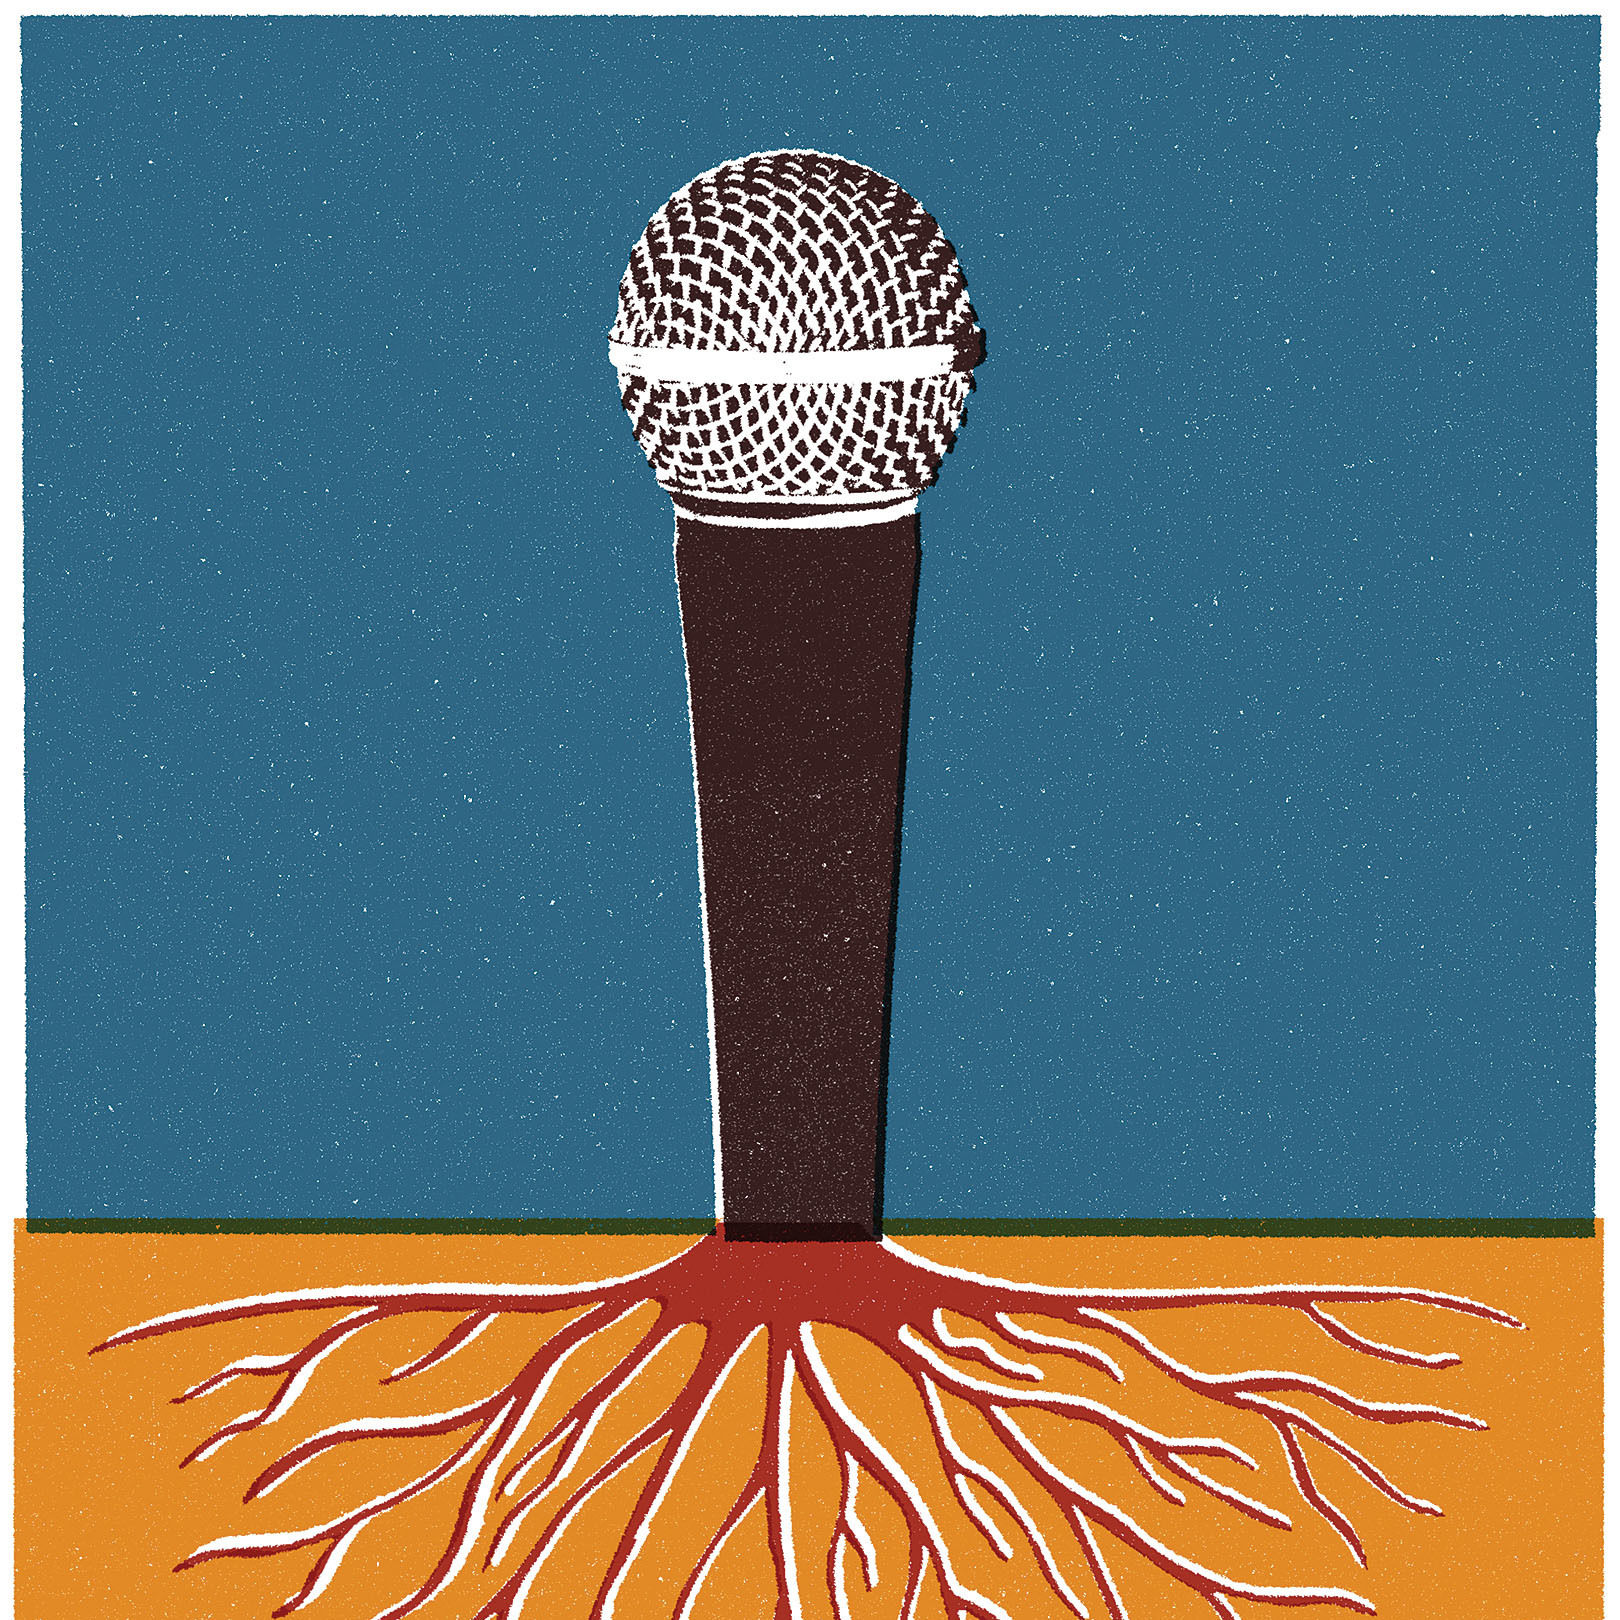 Pomo 1216 hiphop microphone illustration gowaks